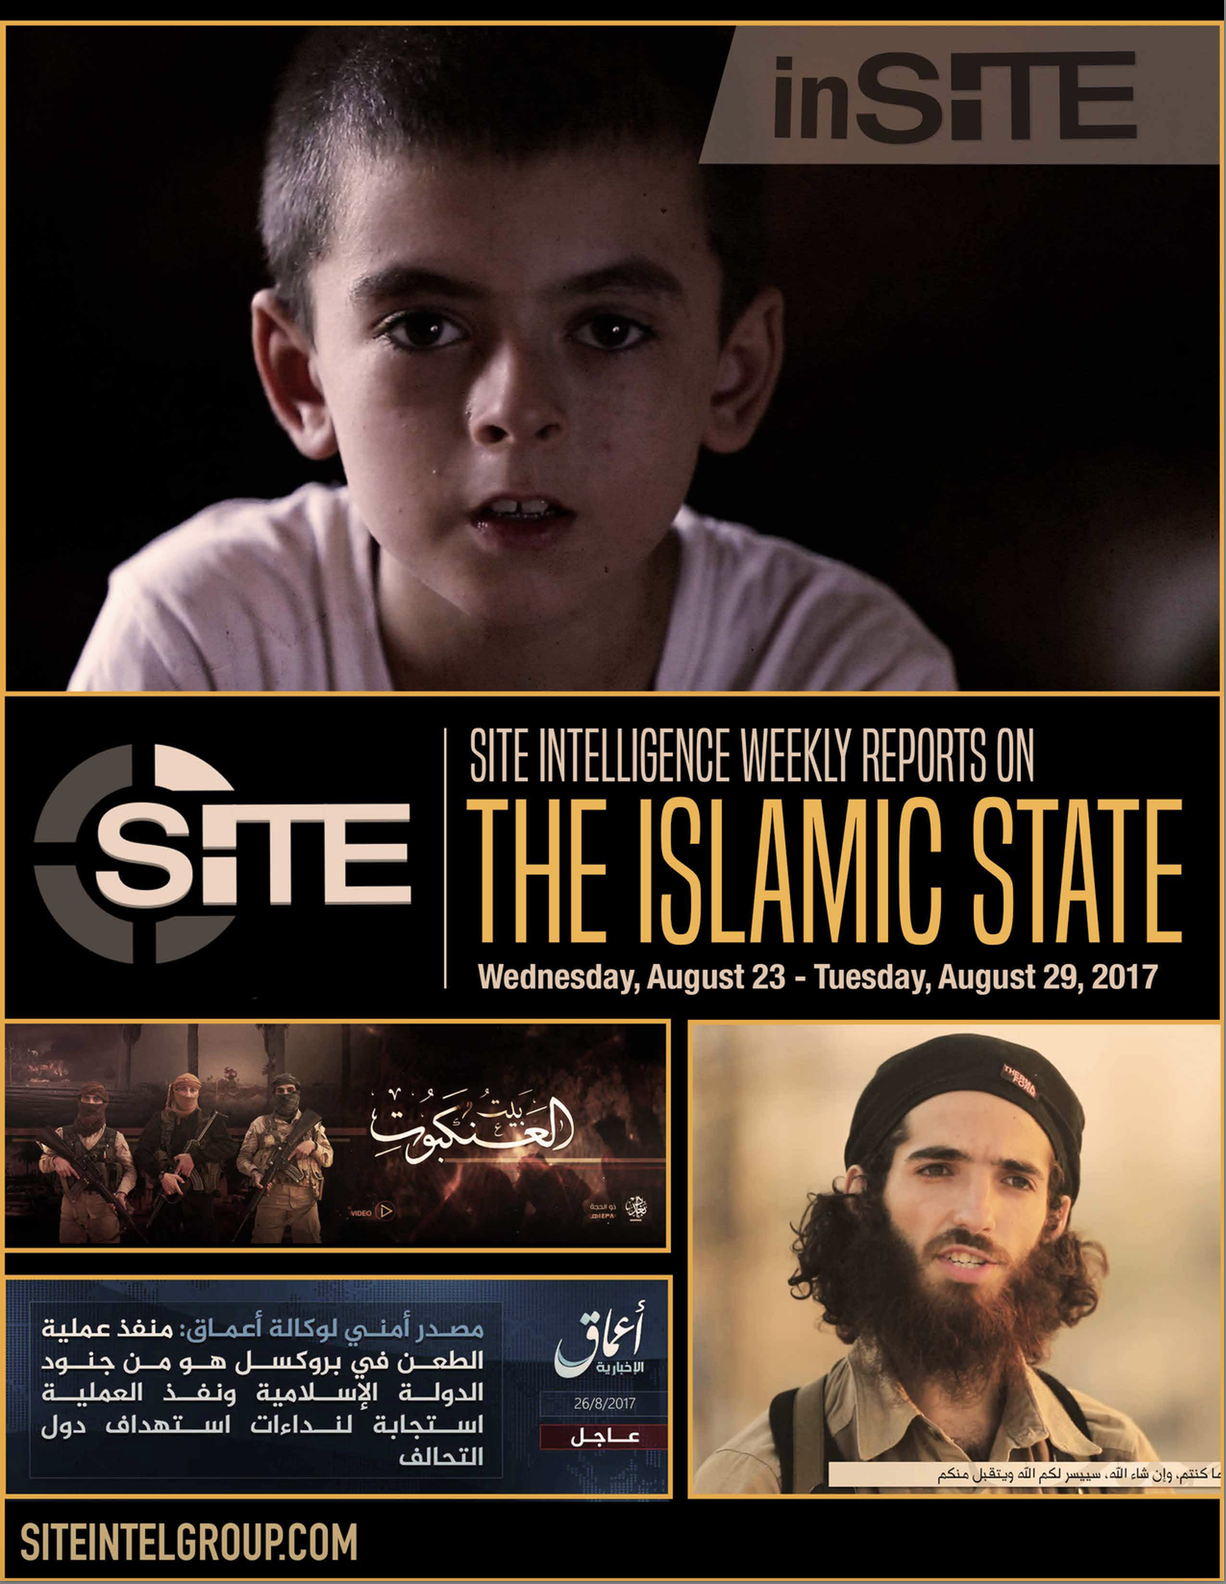 Weekly inSITE on the Islamic State, August 23-29 2017